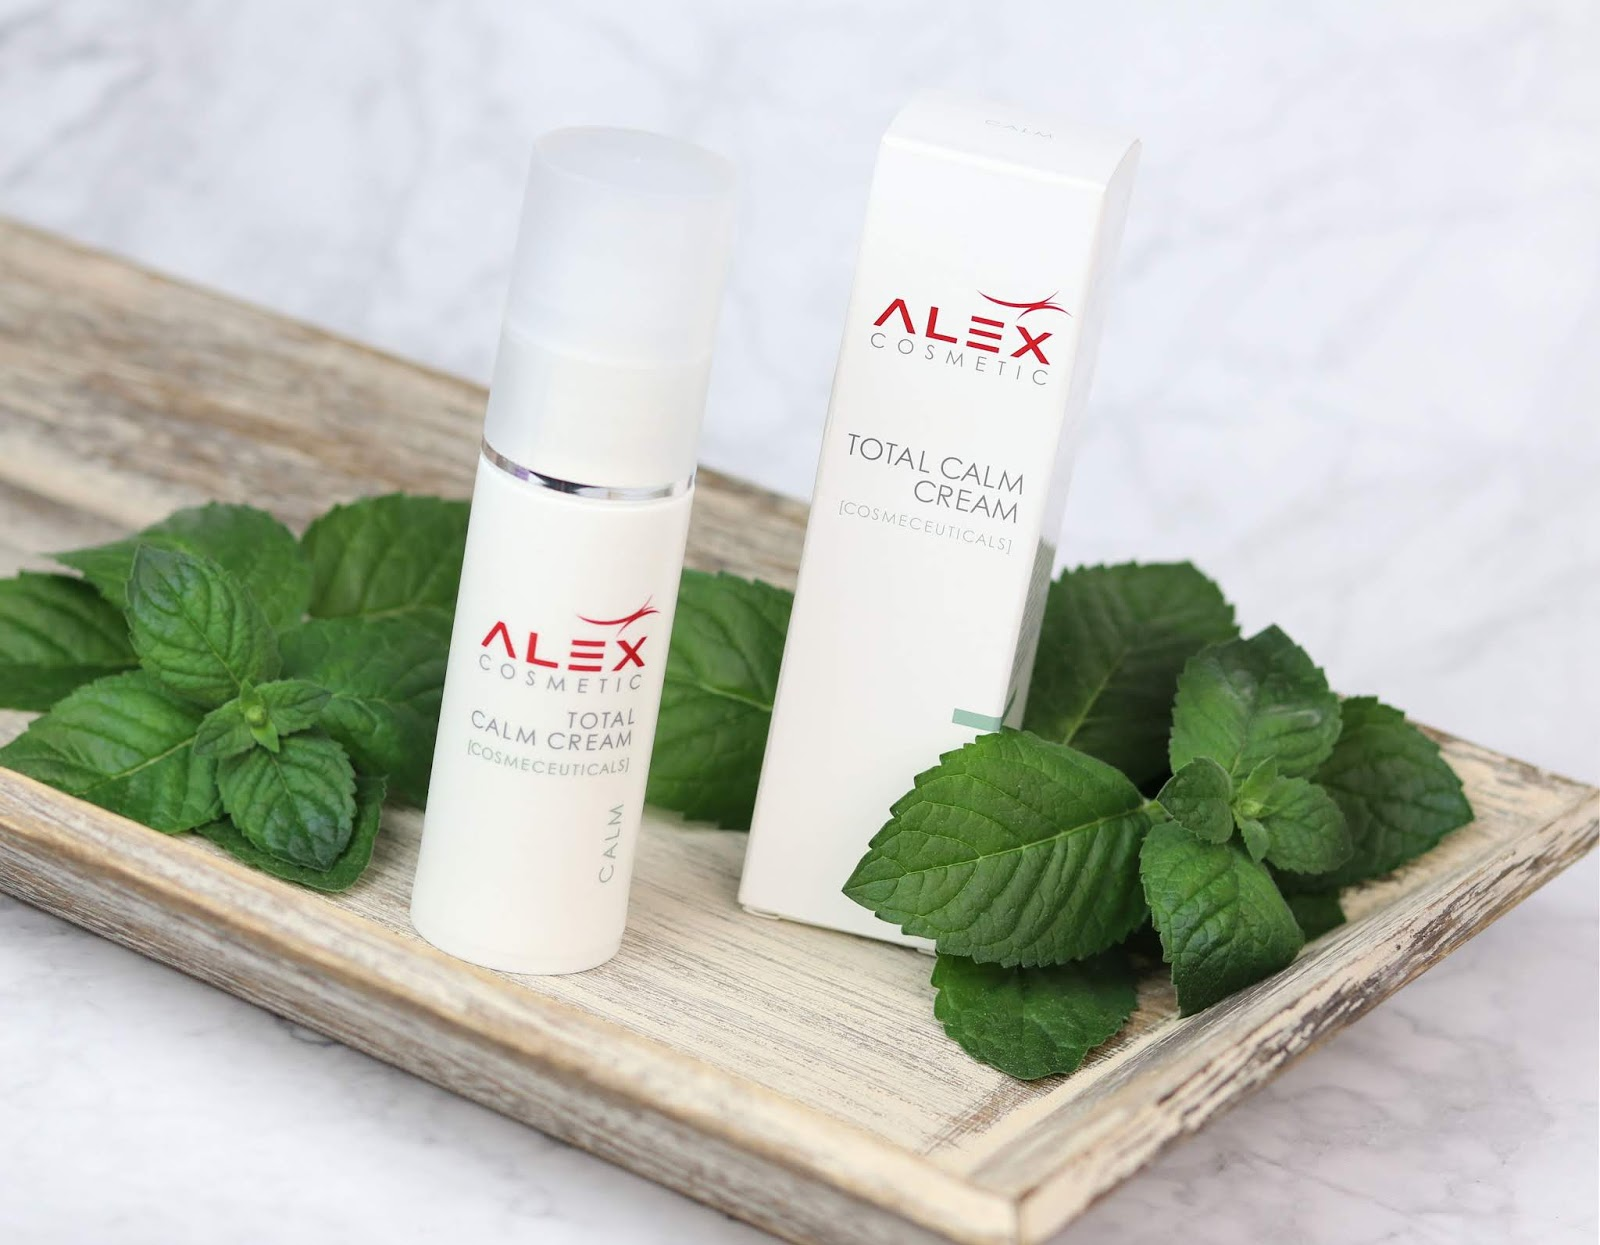 alex cosmetic, anti aging, blogger club box, detox ampulle, erfahrung, getraud gruber, hautpflege, hyaluron, review, serum, total calm cream, trockene haut, unboxing, wellmaxx, wunderfrollein,